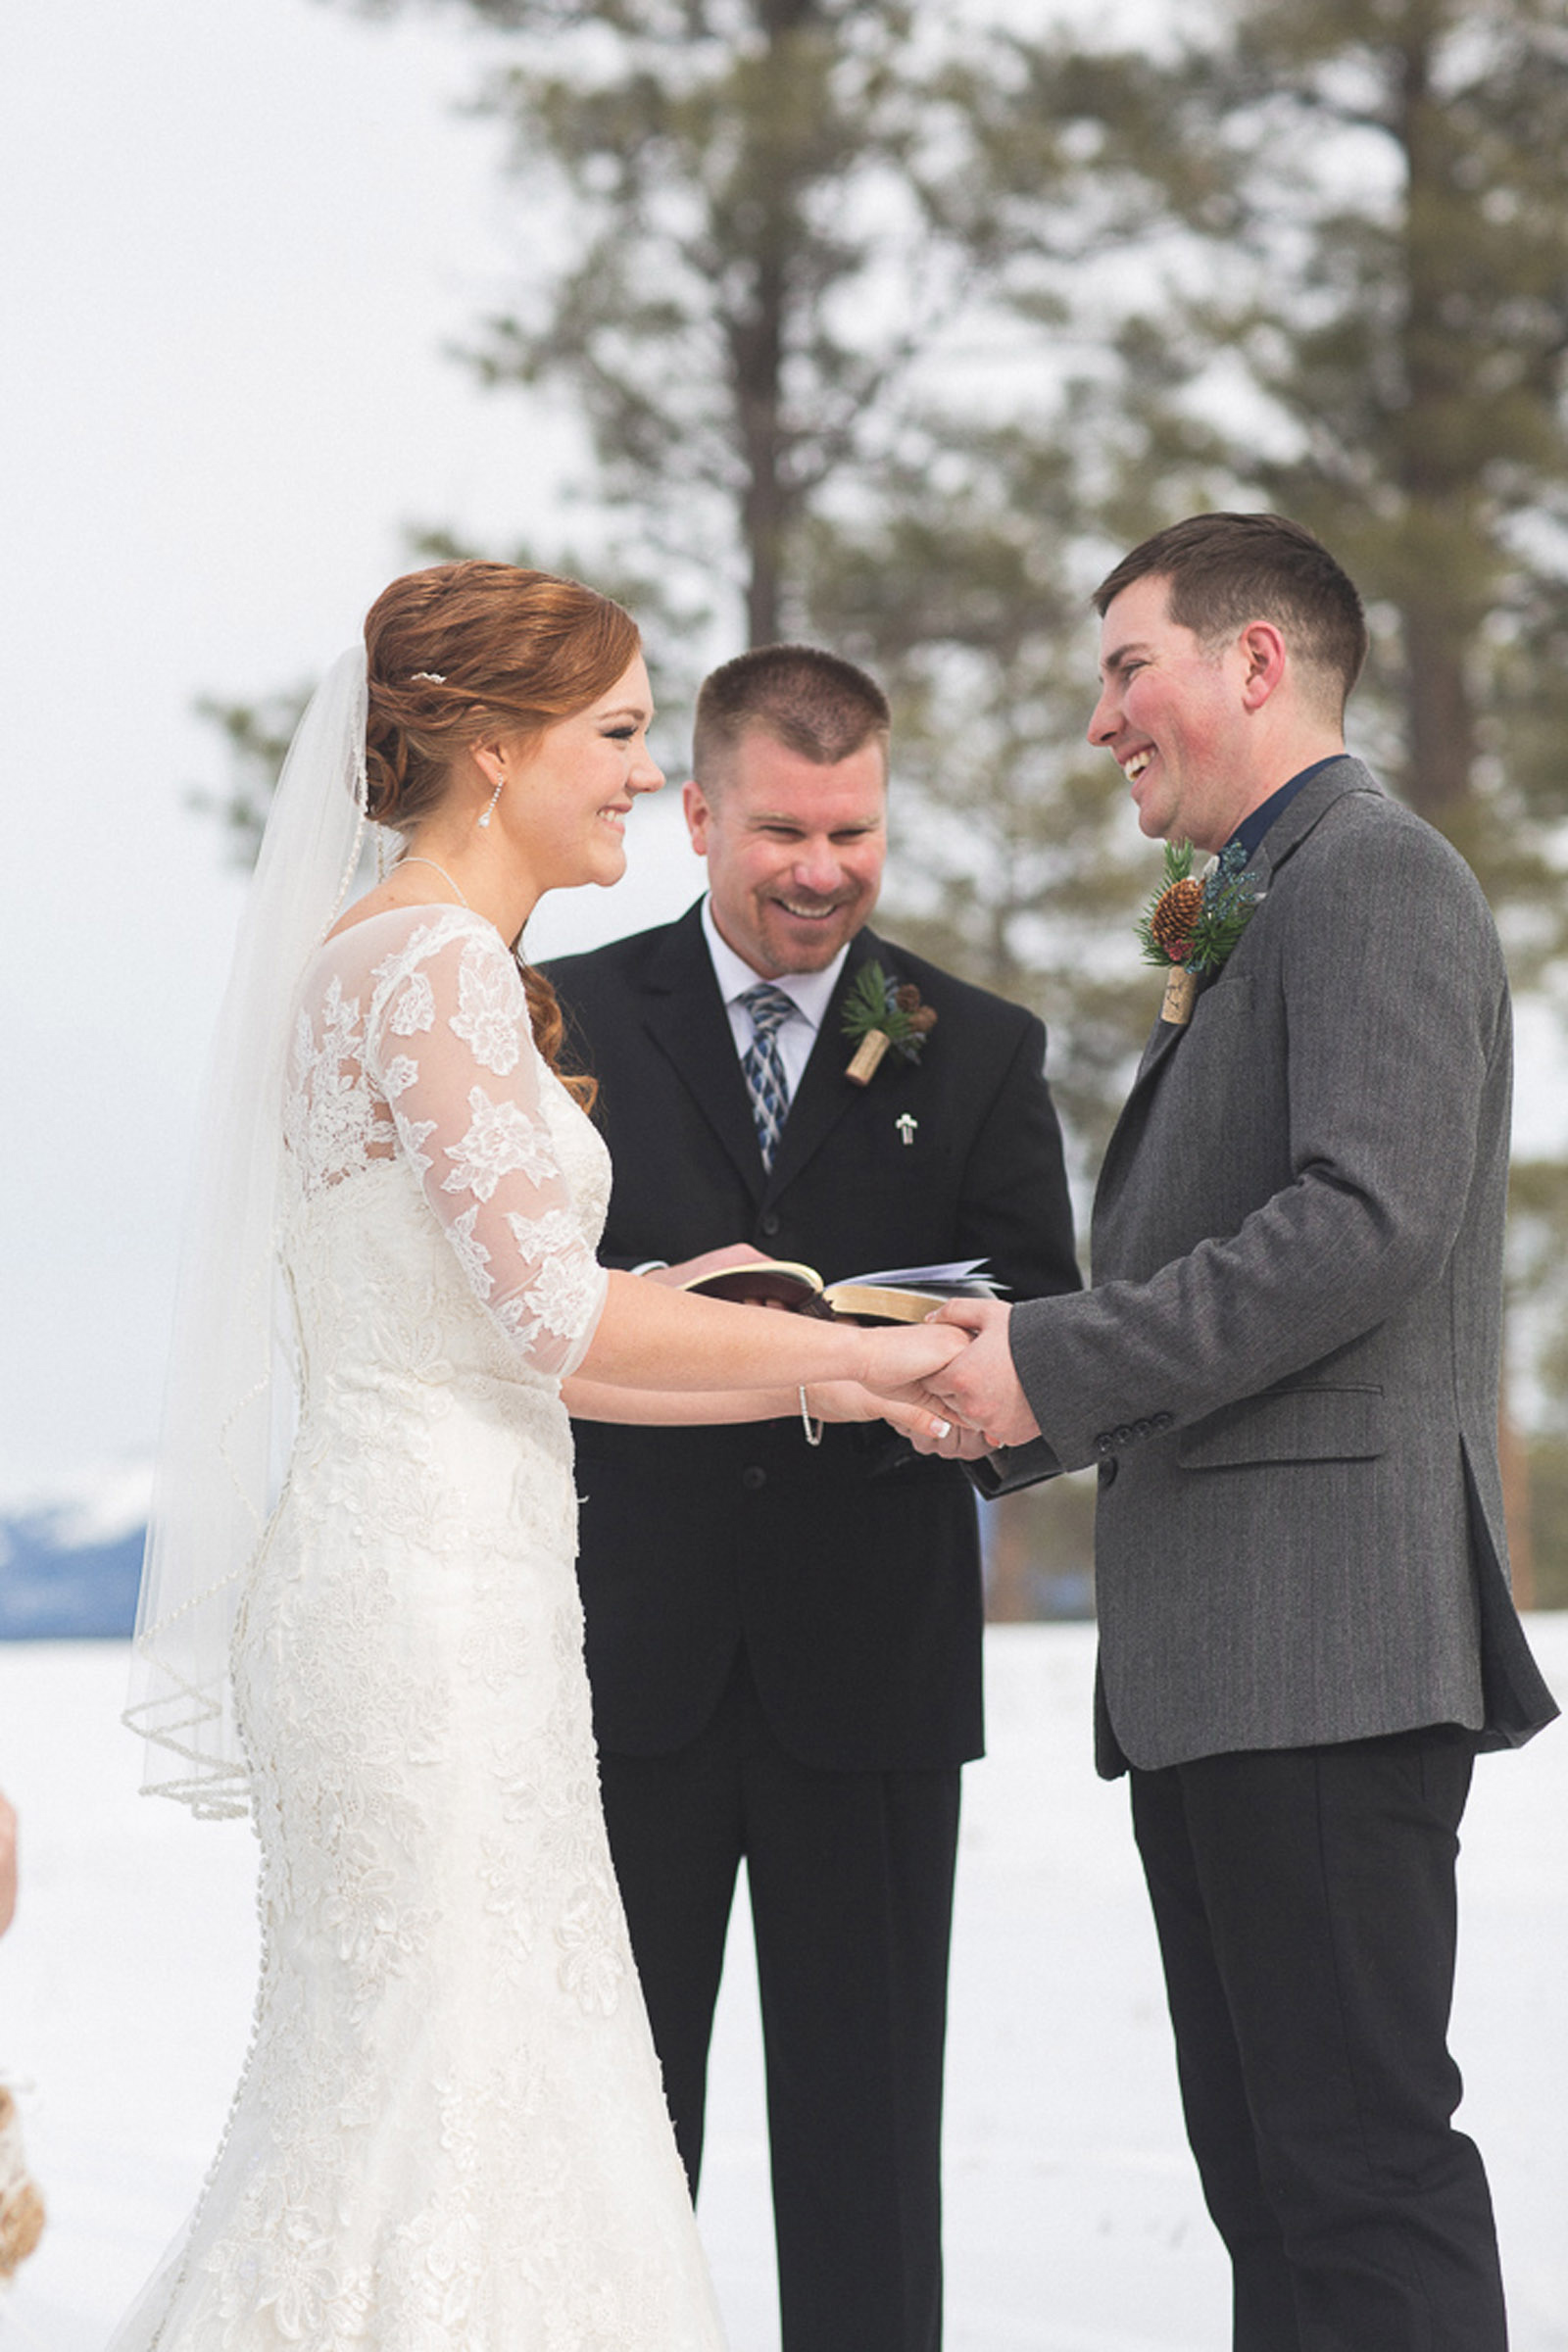 118-wedding-ceremony-in-pagosa-springs-wedding-photographer-snow-winter-wedding